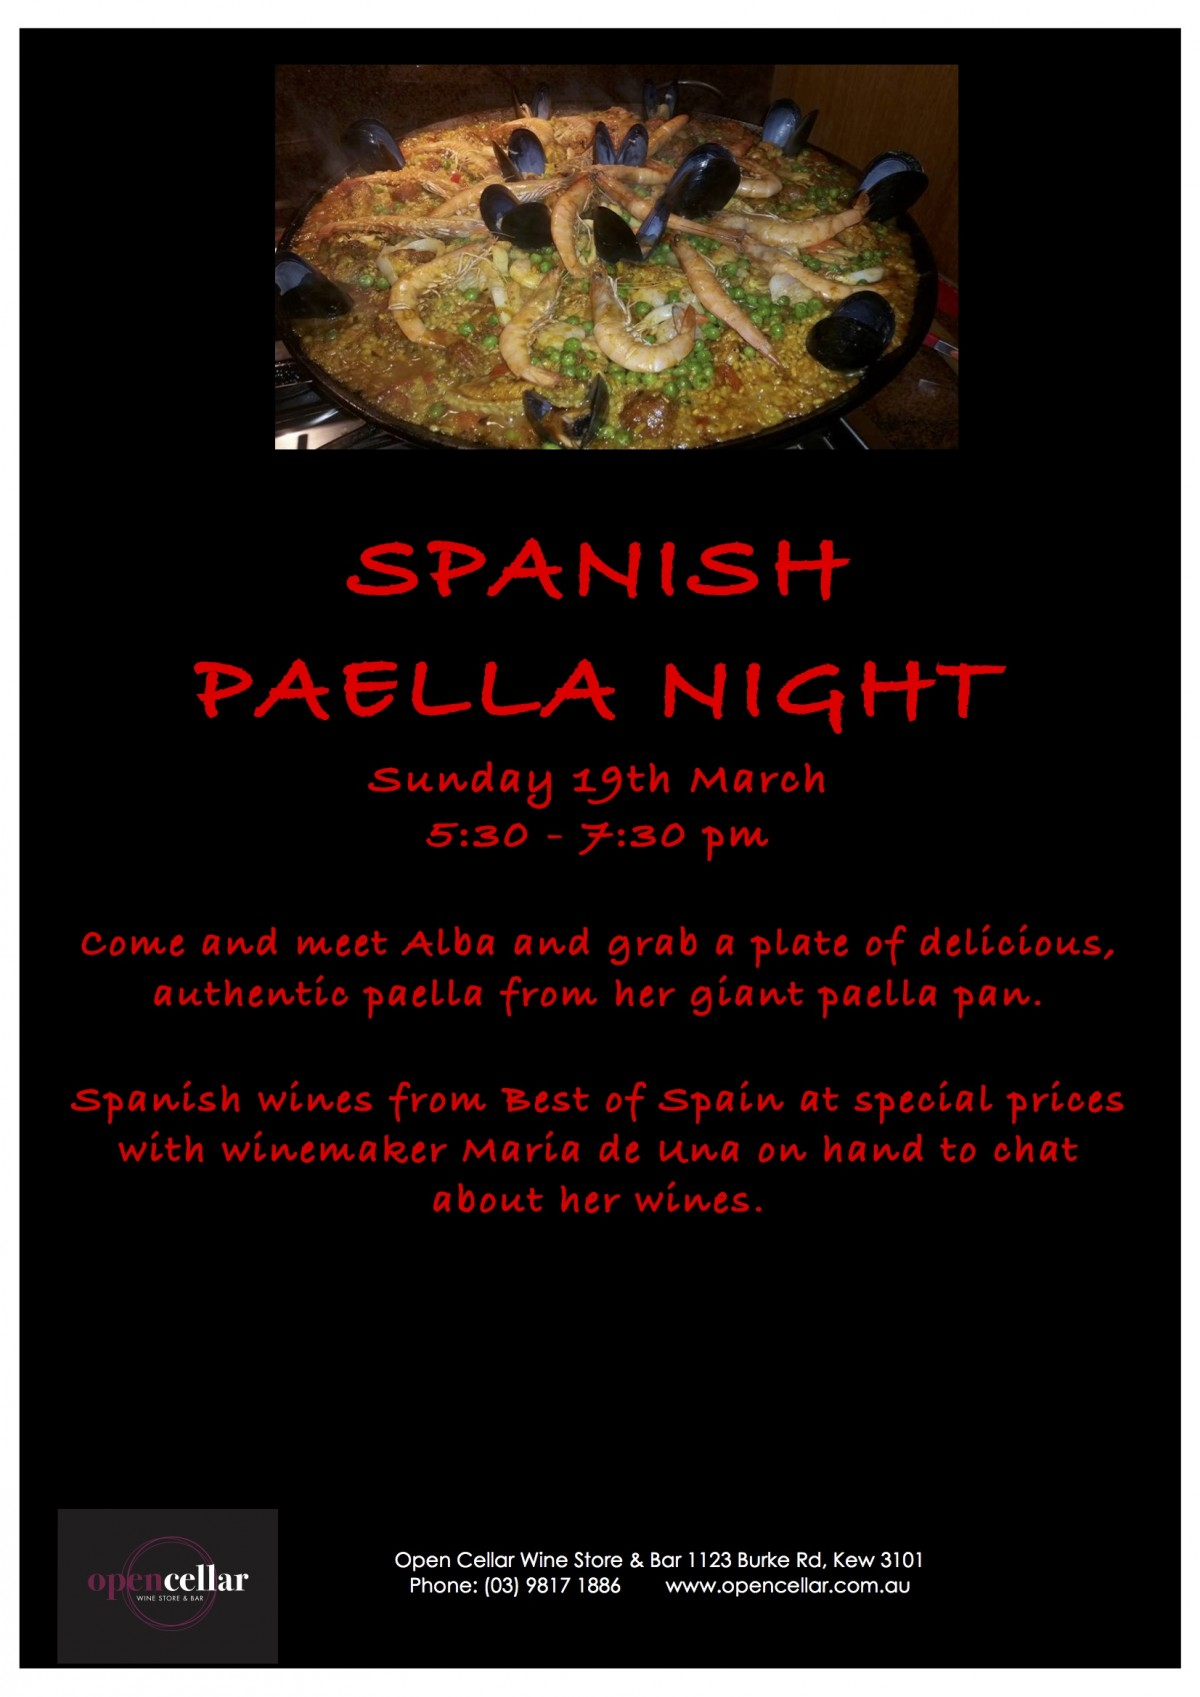 SPANISH Paella Night